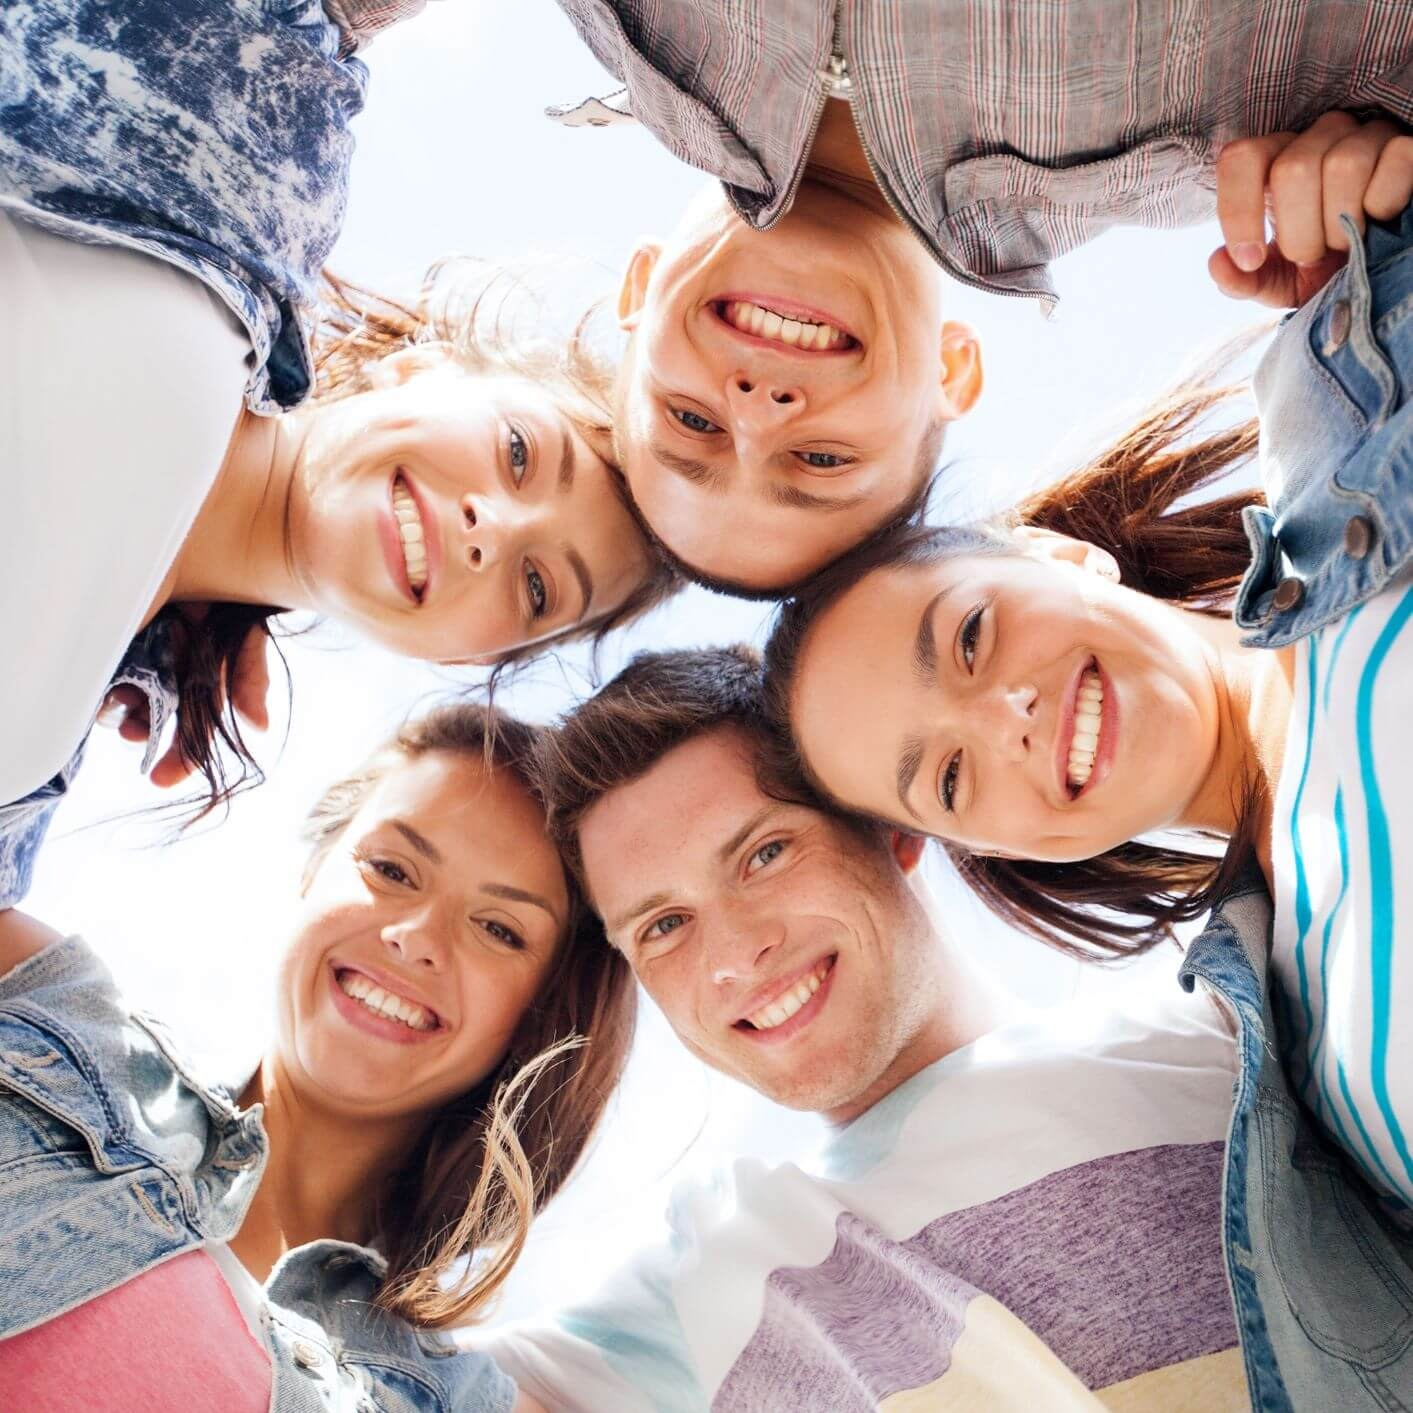 Adolescent Medicine - A relatively new medical specialty dedicated to the unique physical and emotional health needs of teenagers and young adults.